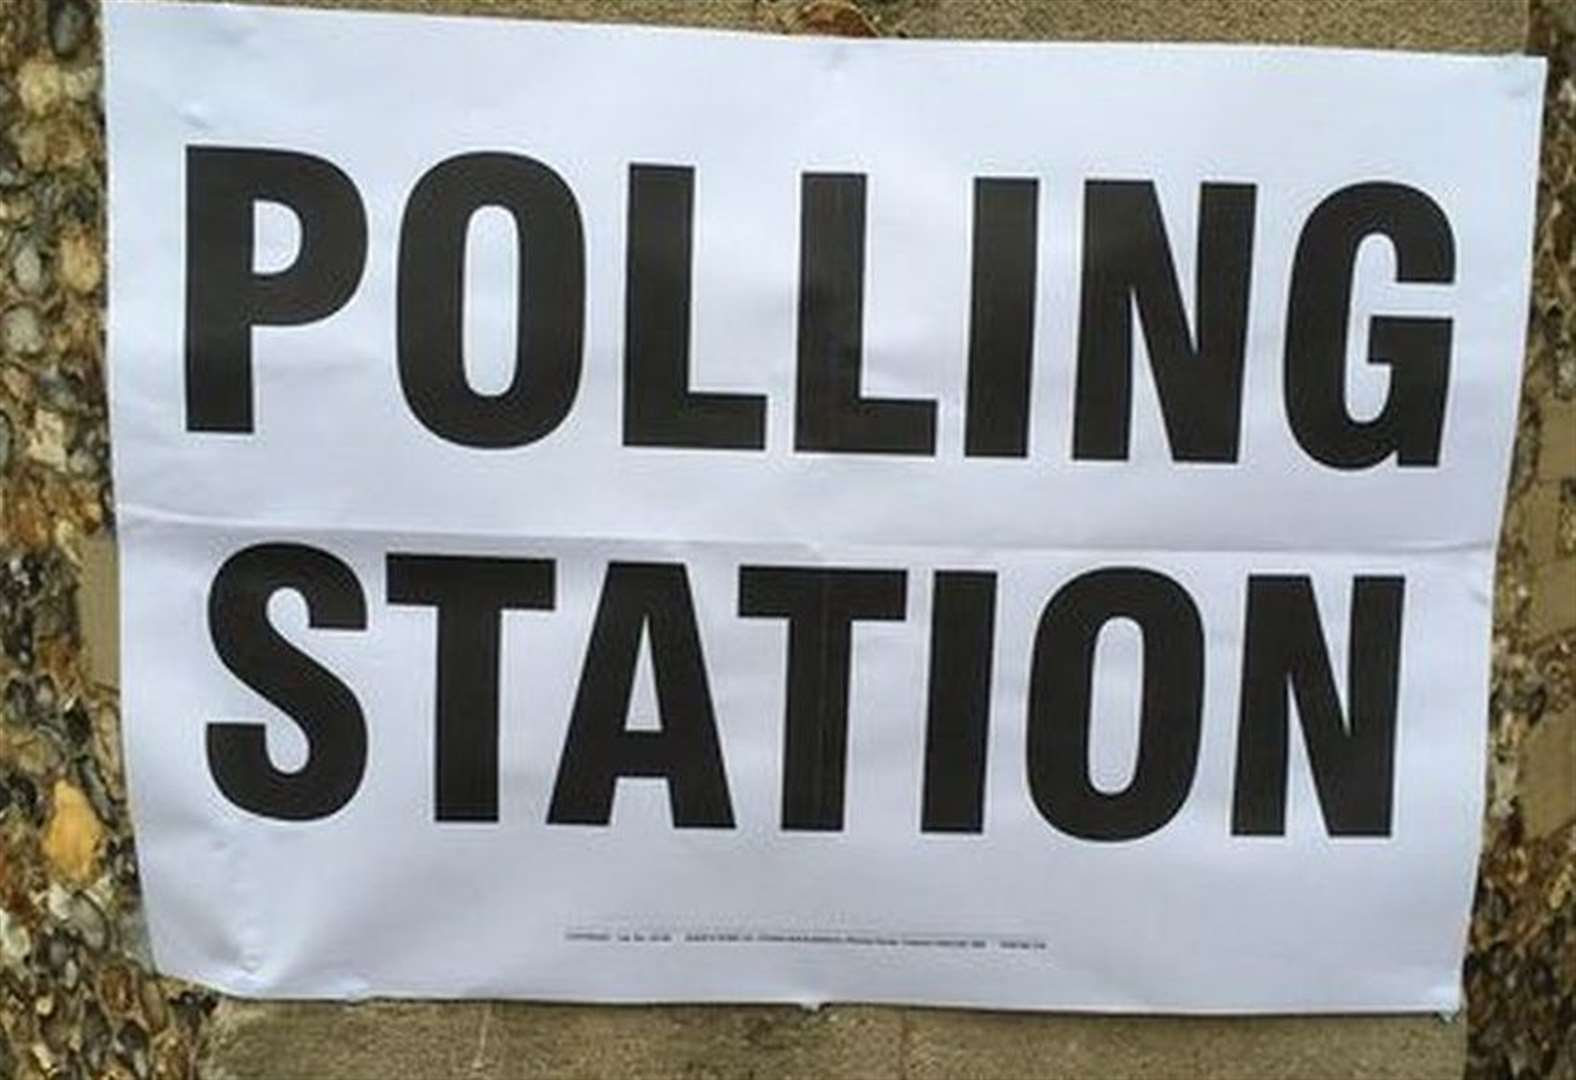 Have your say on polling stations across area